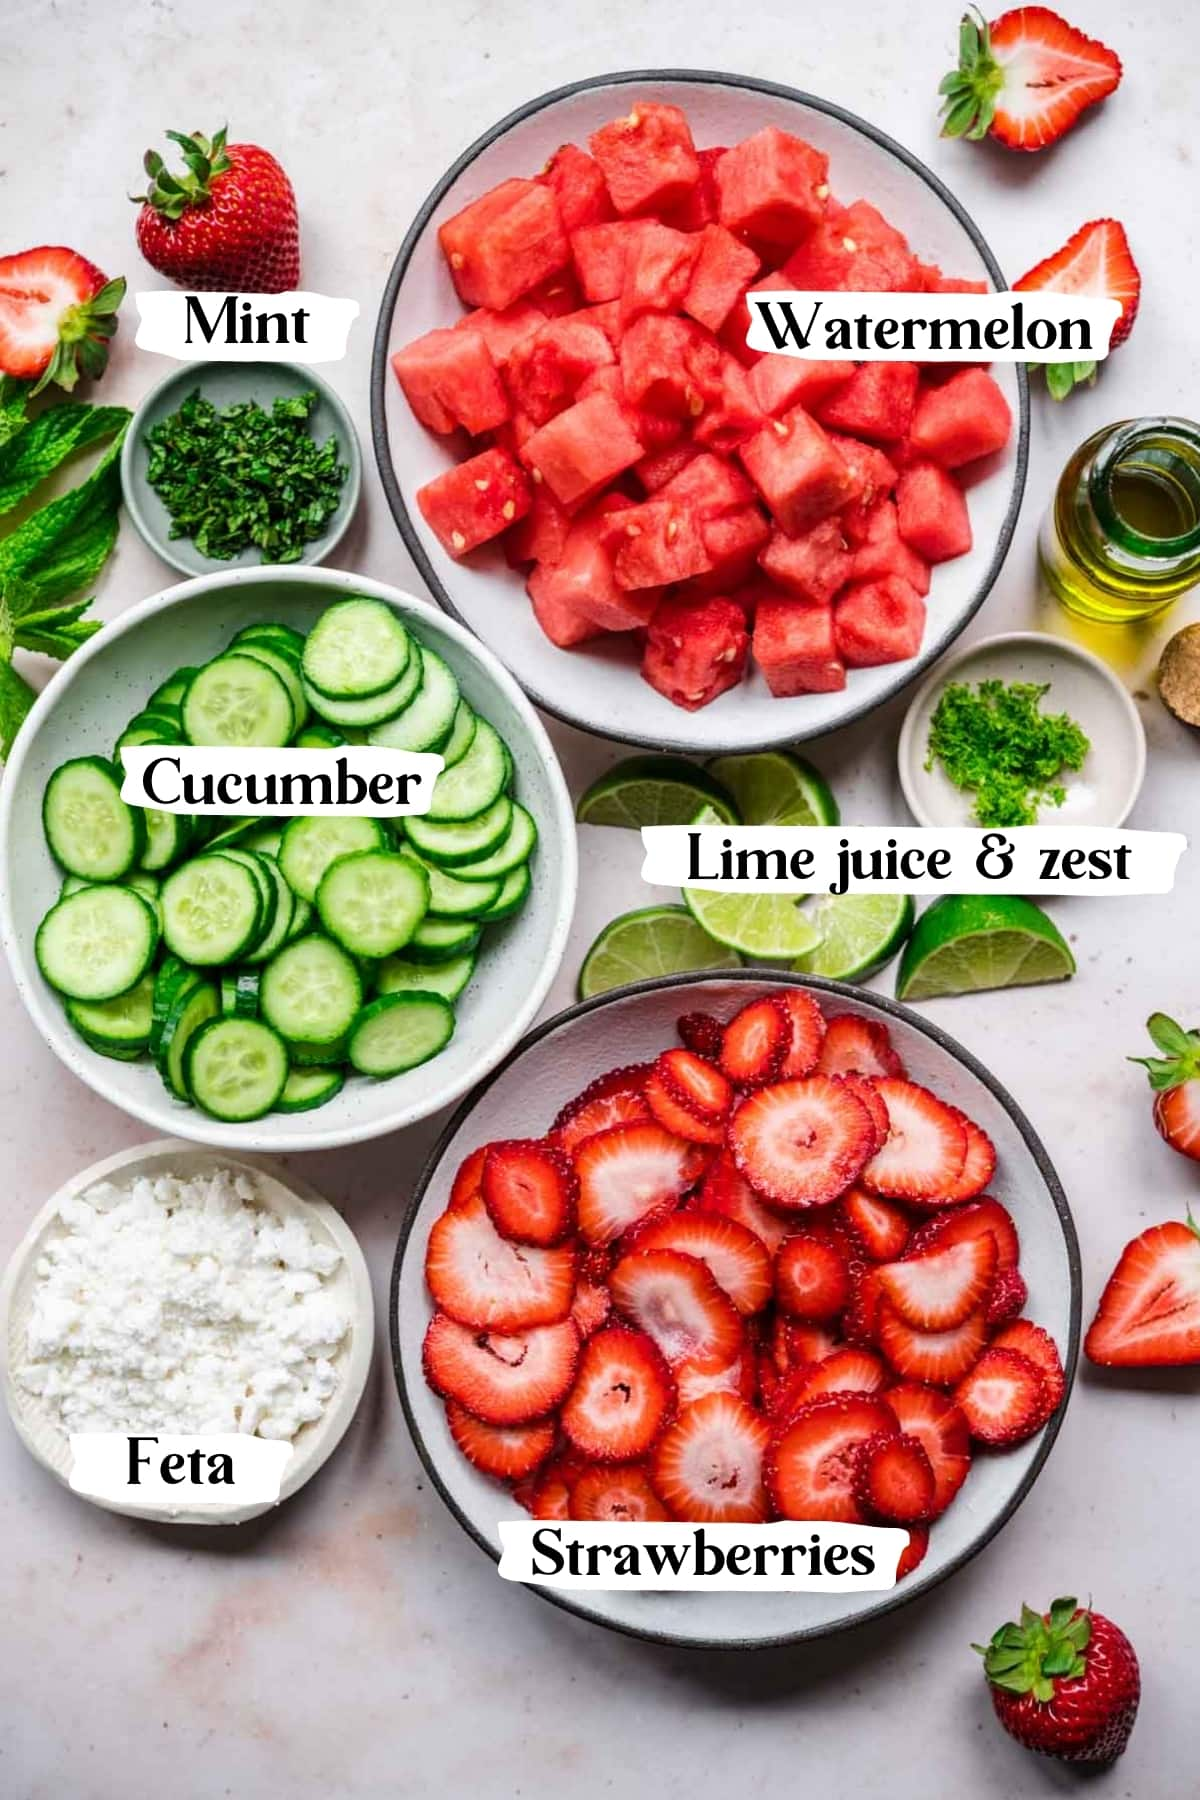 overhead view of ingredients for watermelon cucumber strawberry salad in prep bowls.